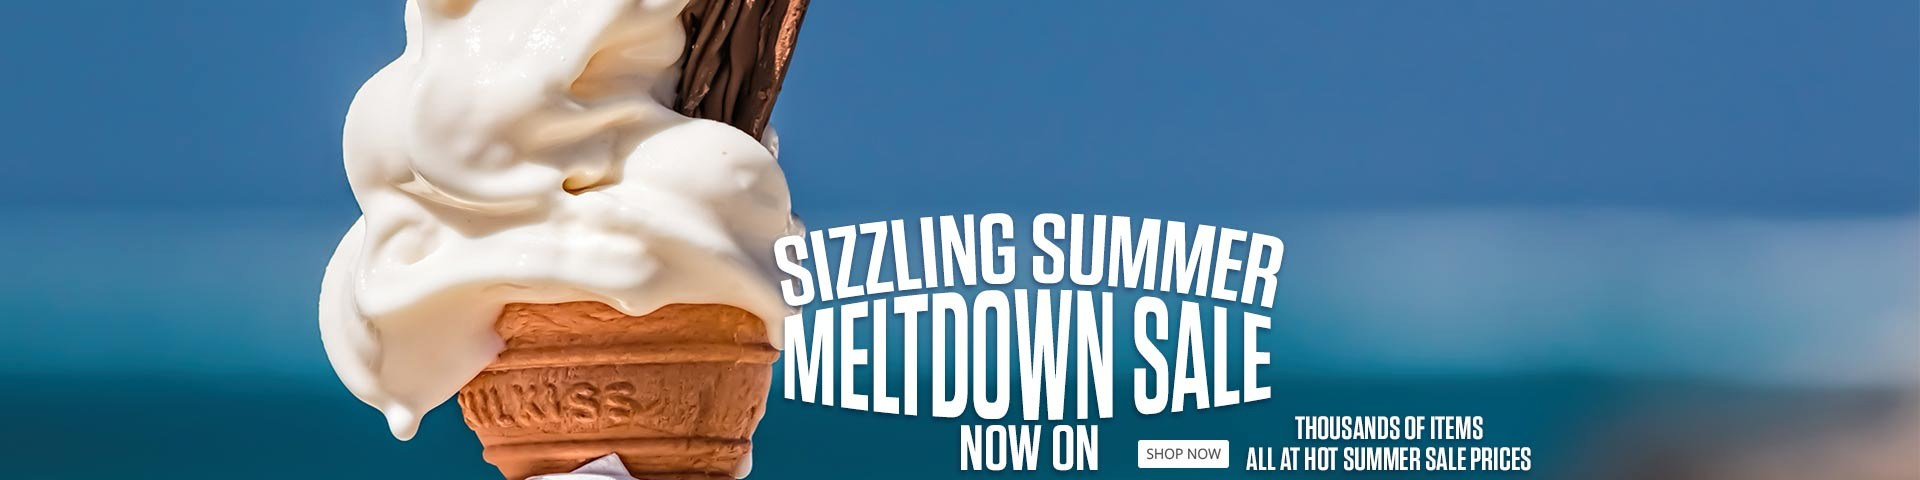 Sizzling Summer Meltdown Sale now ON!